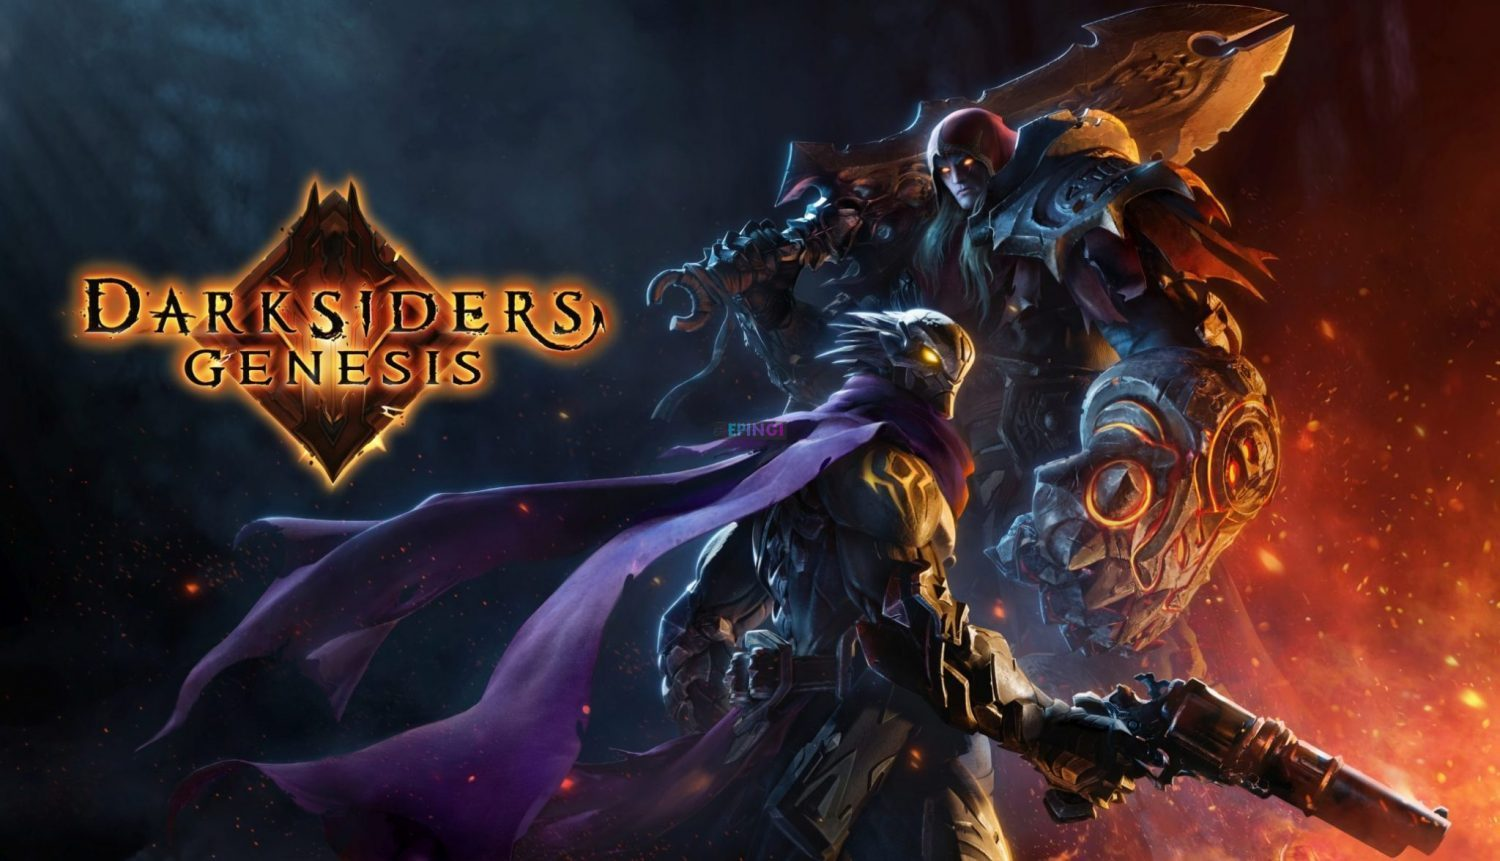 Darksiders Genesis Apk Mobile Android Version Full Game Setup Free Download